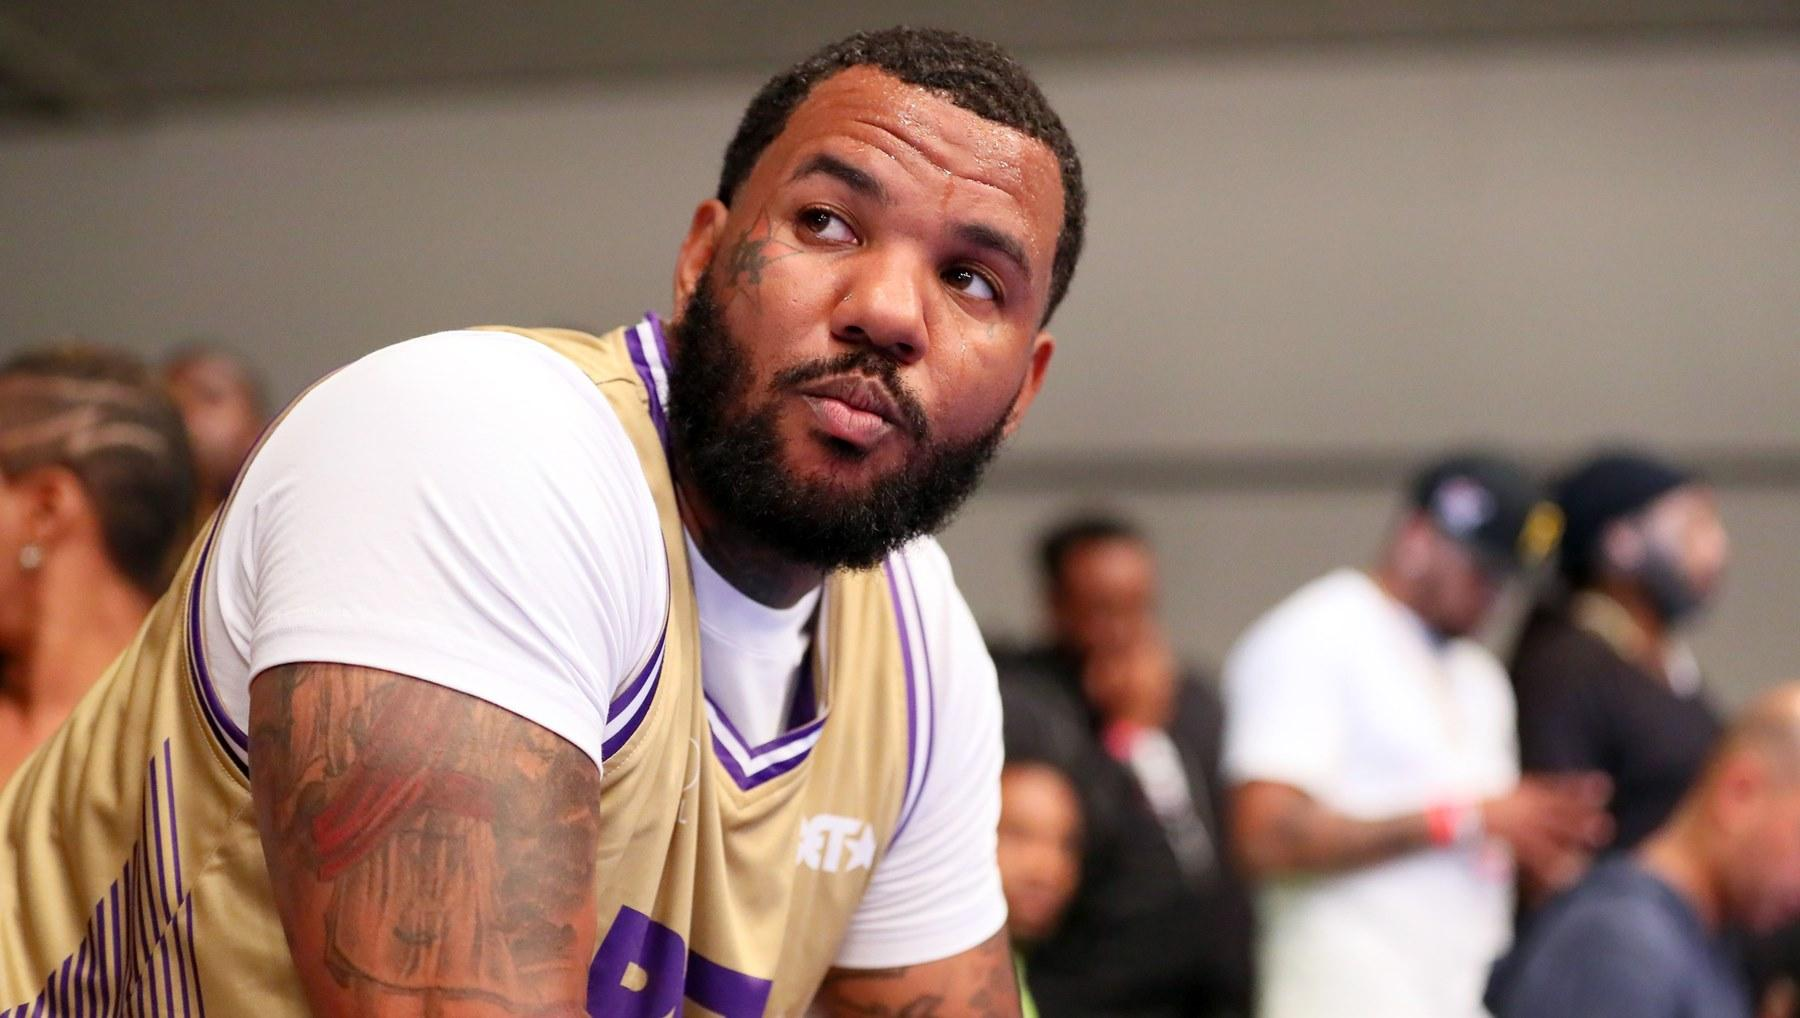 The Game Makes Surprising Revelation About His Grandmother As He Mourns Her Loss